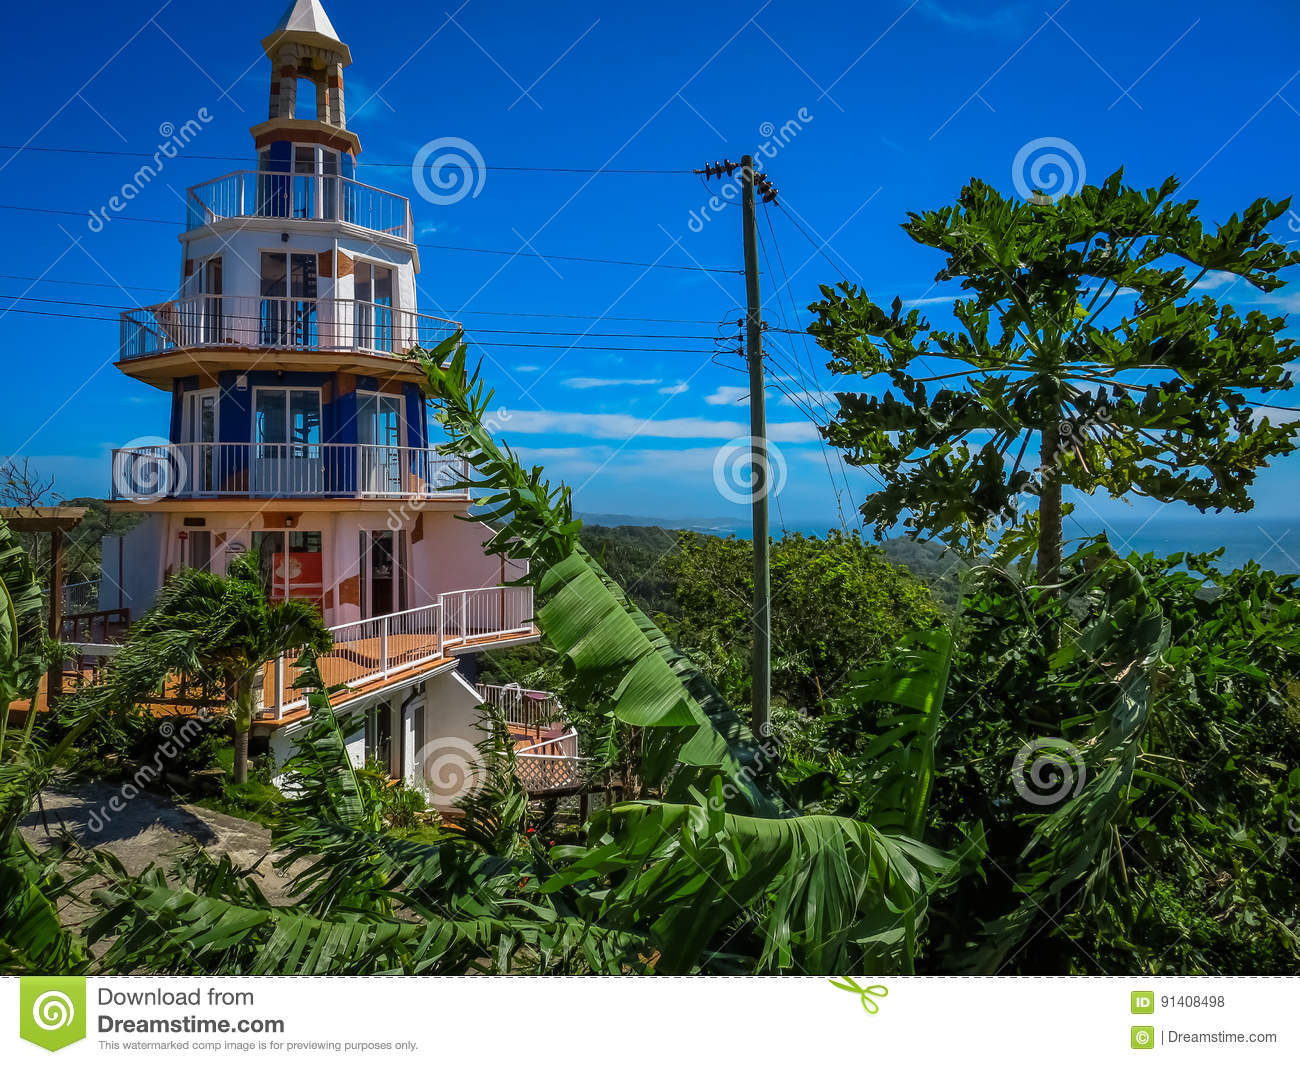 Roatan, Honduras Lighthouse building. Landscape of the island with a blue sky and green vegetation in the background.